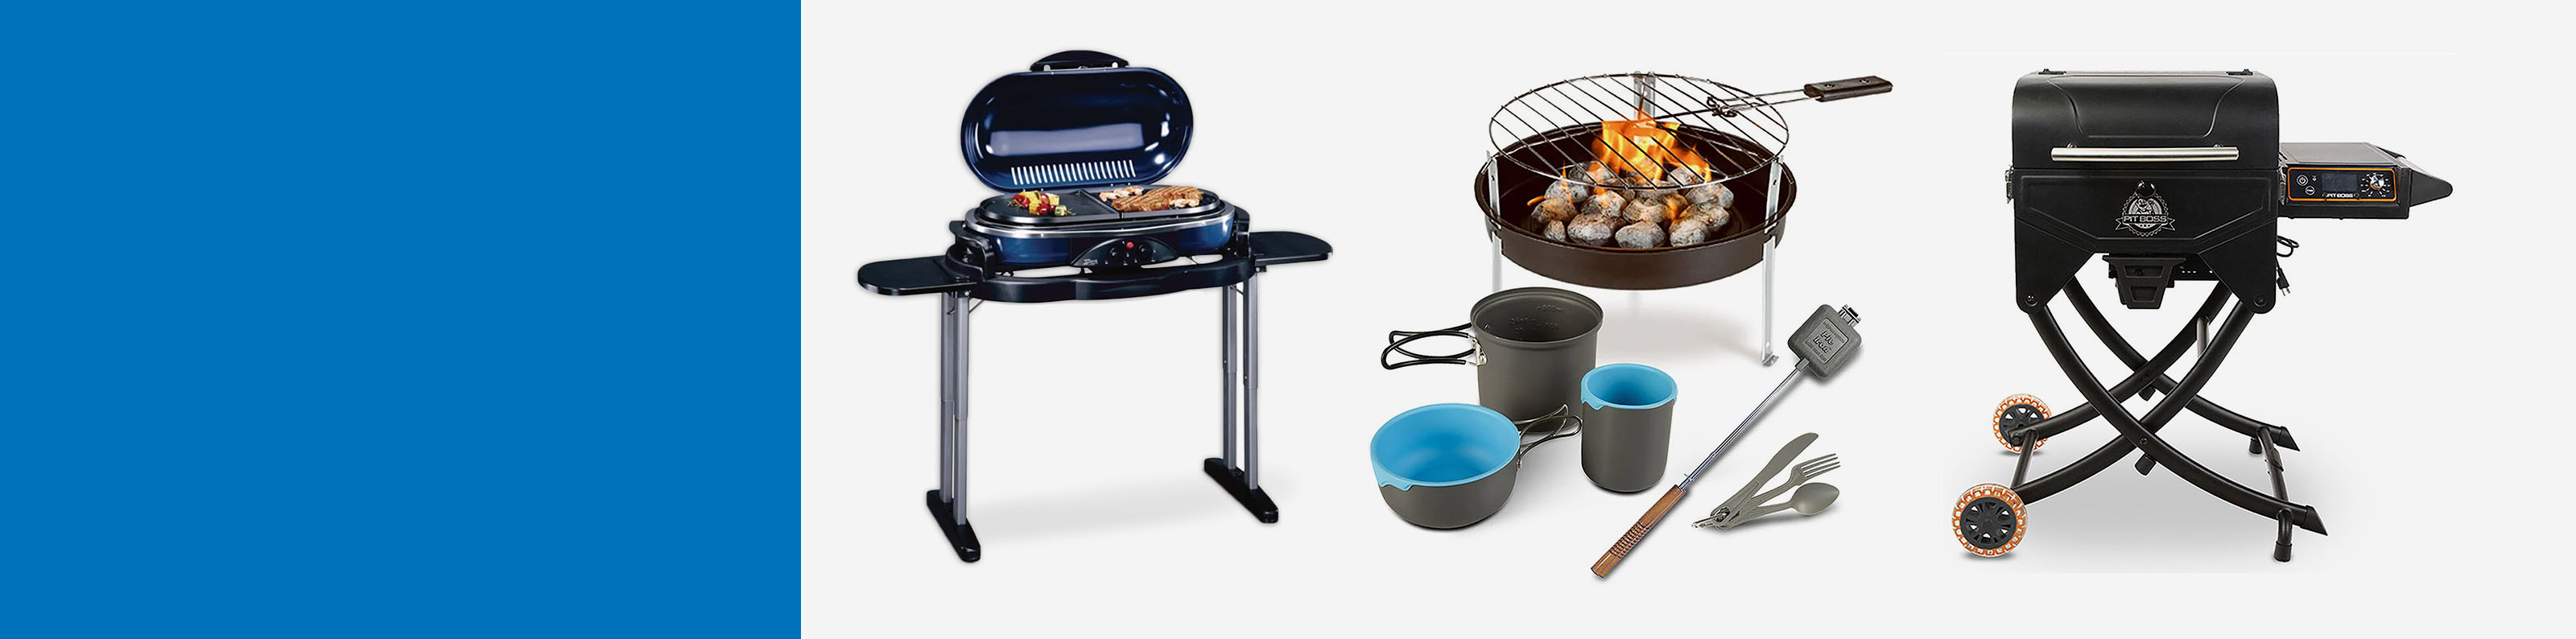 Excellent Cooking Gear! Save up to 40% on Grills & Camp Kitchen